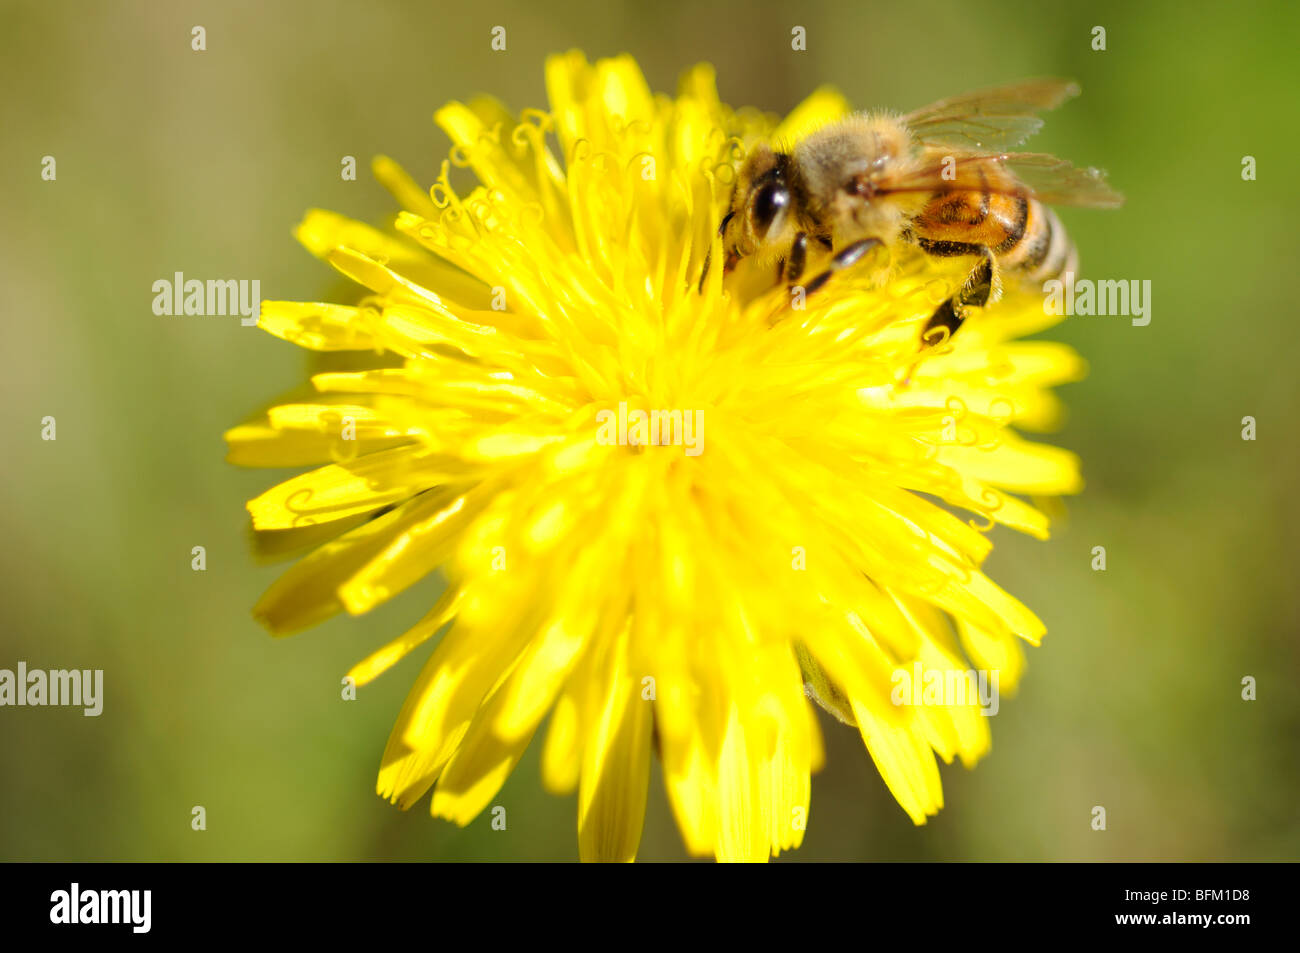 Honey bee on dandelion flower - Stock Image